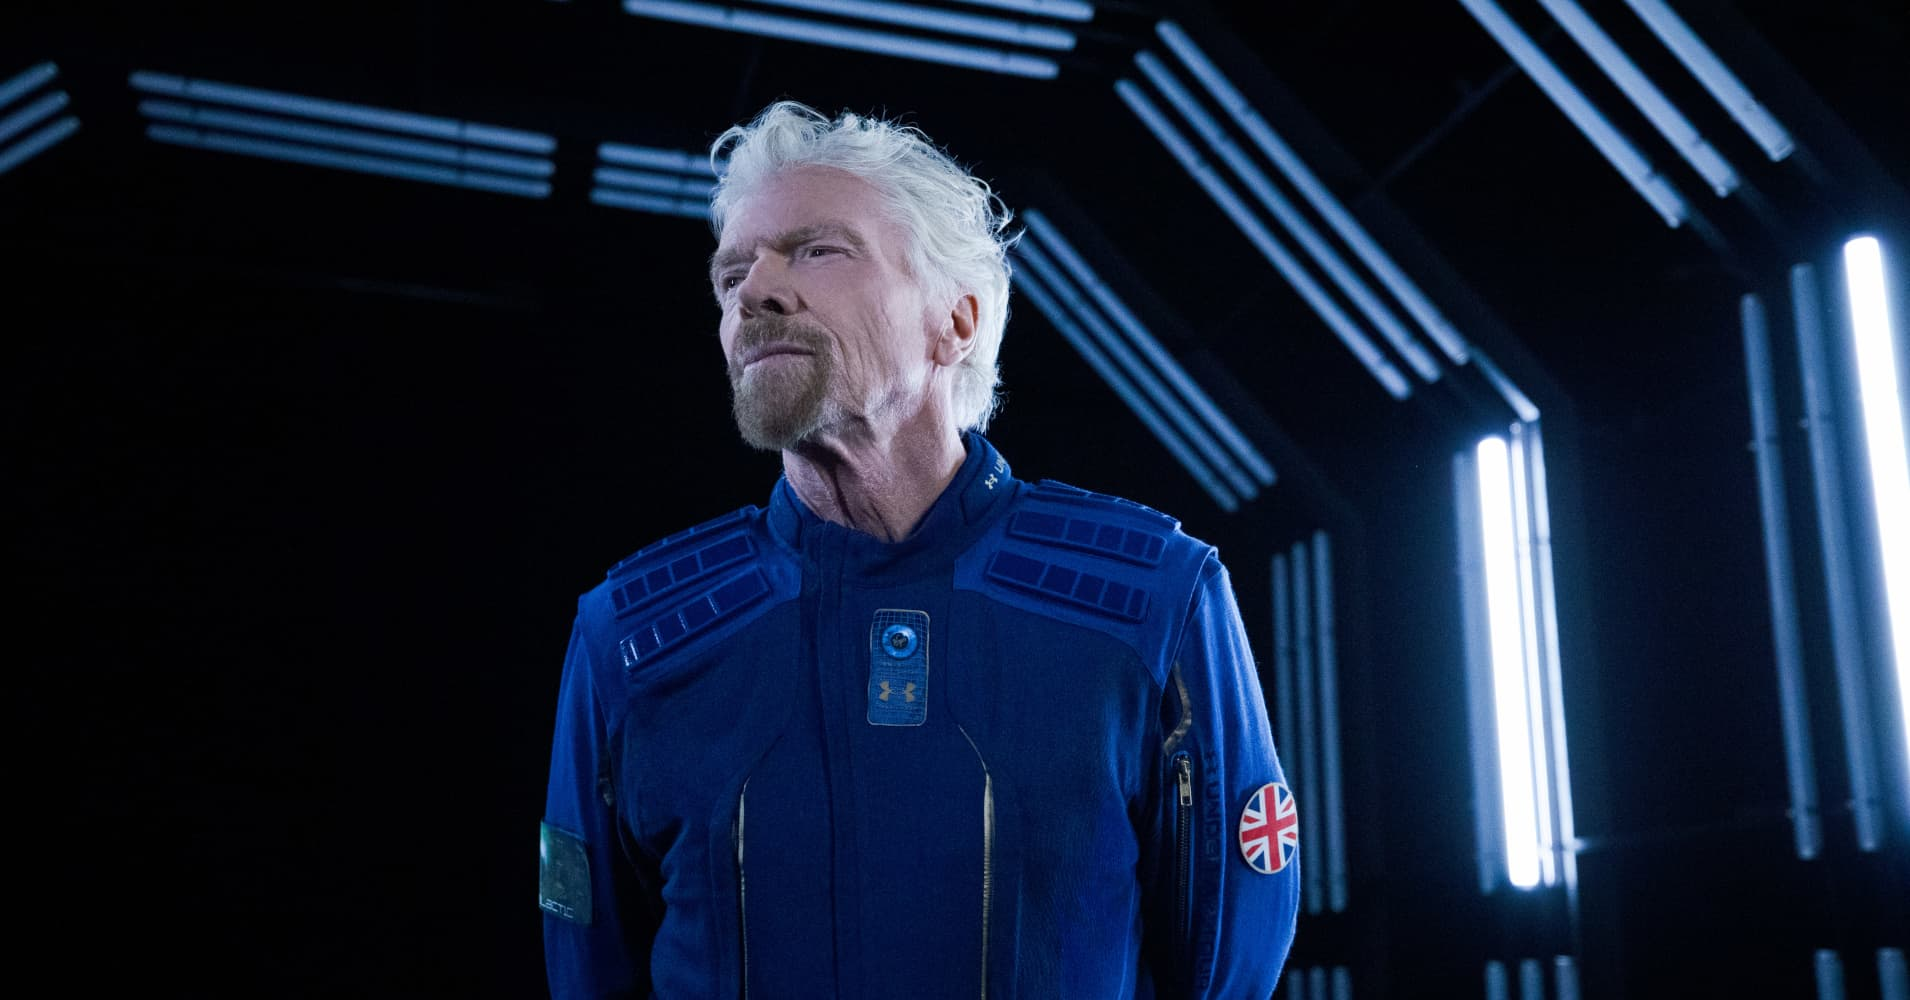 cnbc.com - Michael Sheetz - Virgin Galactic and Under Armour unveil spacesuits for the first space tourists to wear next year